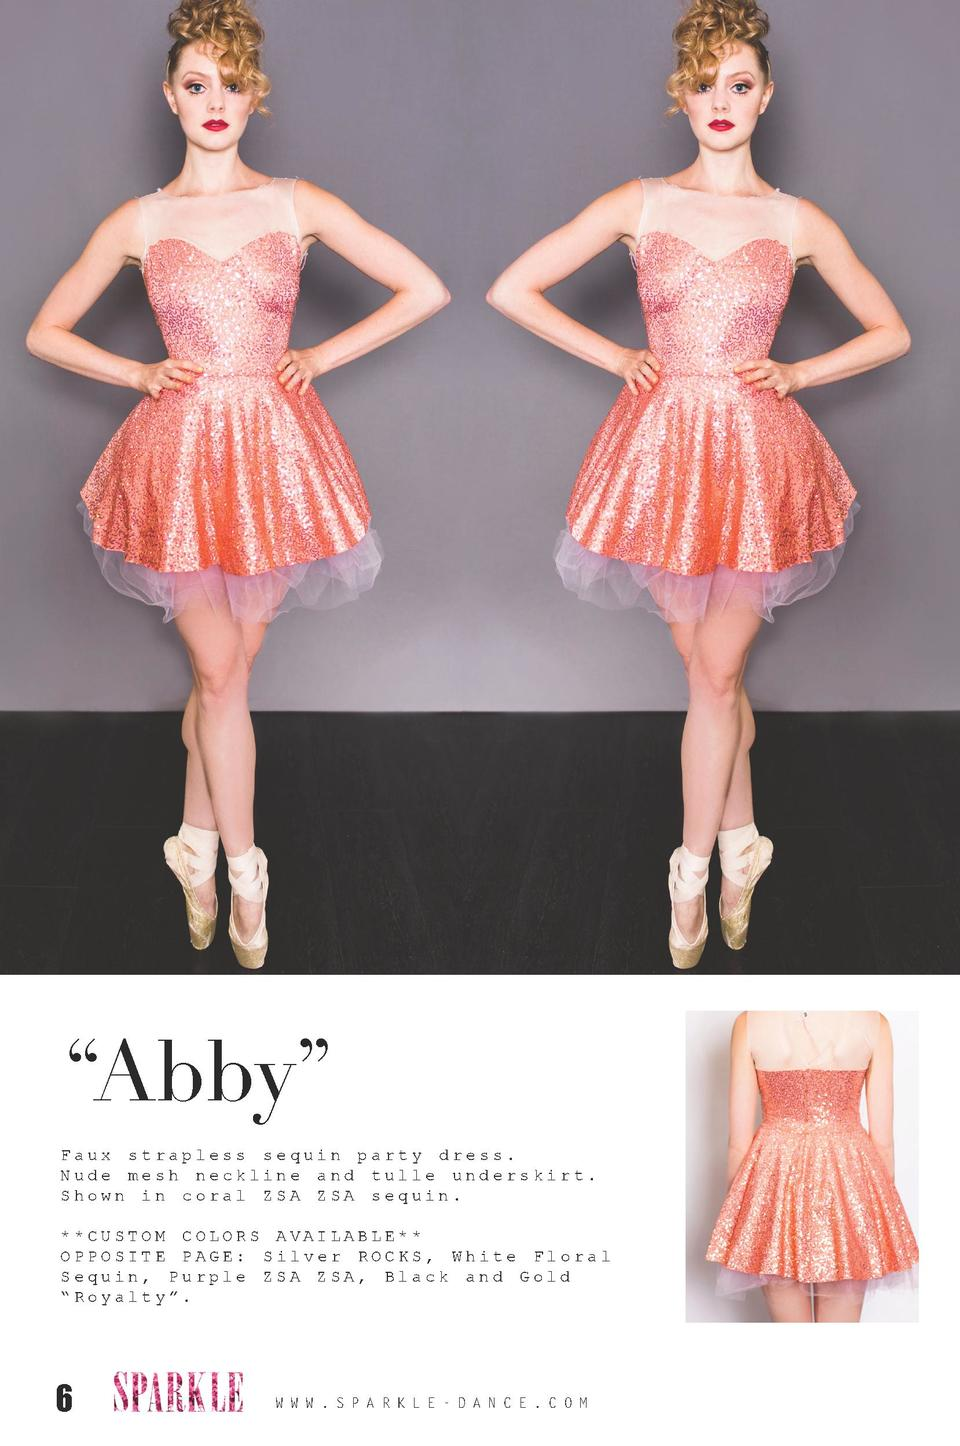 Abby    Faux strapless sequin party dress. Nude mesh neckline and tulle underskirt. Shown in coral ZSA ZSA sequin.   CU...